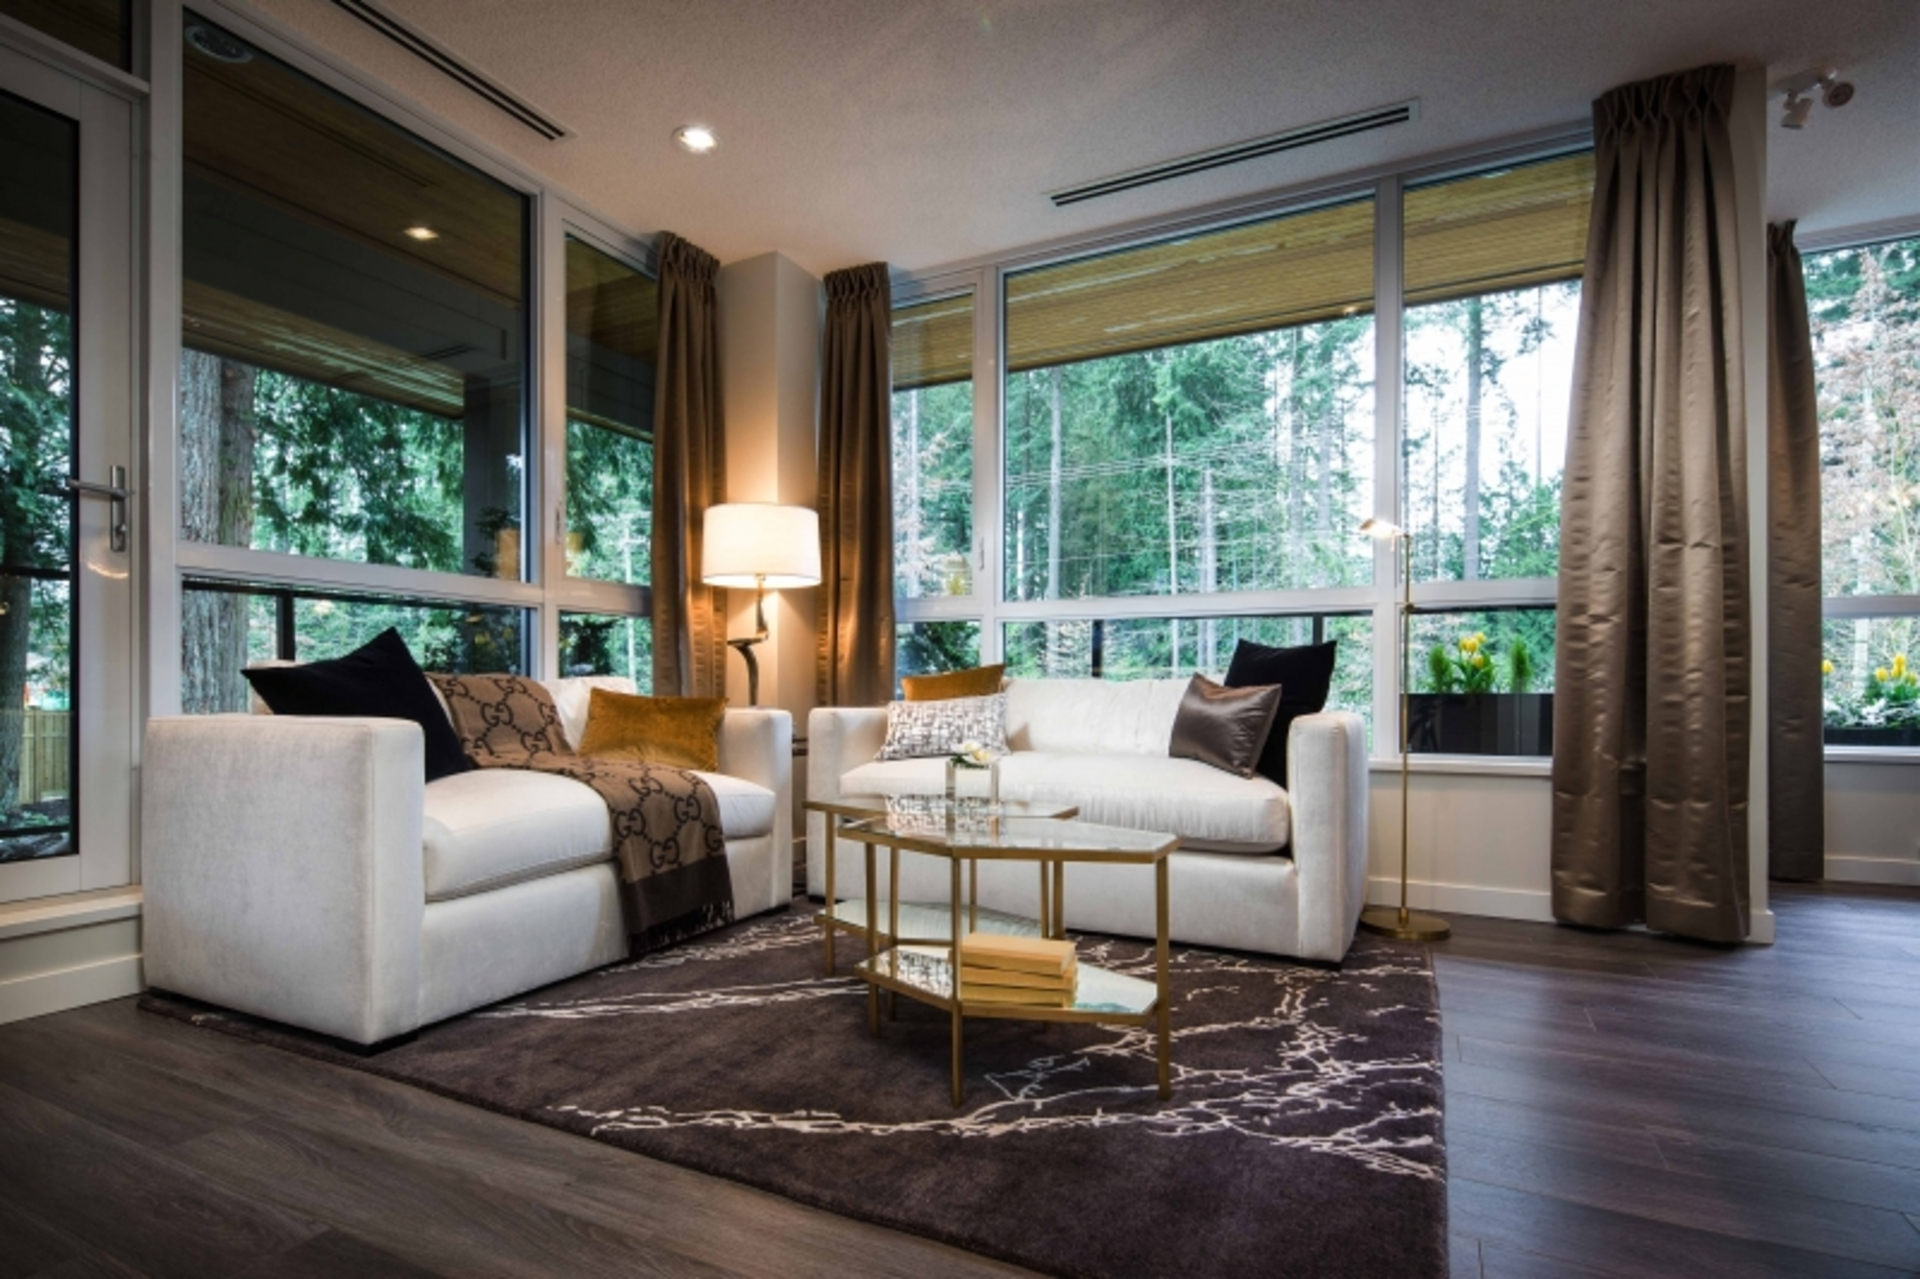 lloyd_living at 2302 - 3100 Windsor Gate, North Coquitlam, Coquitlam